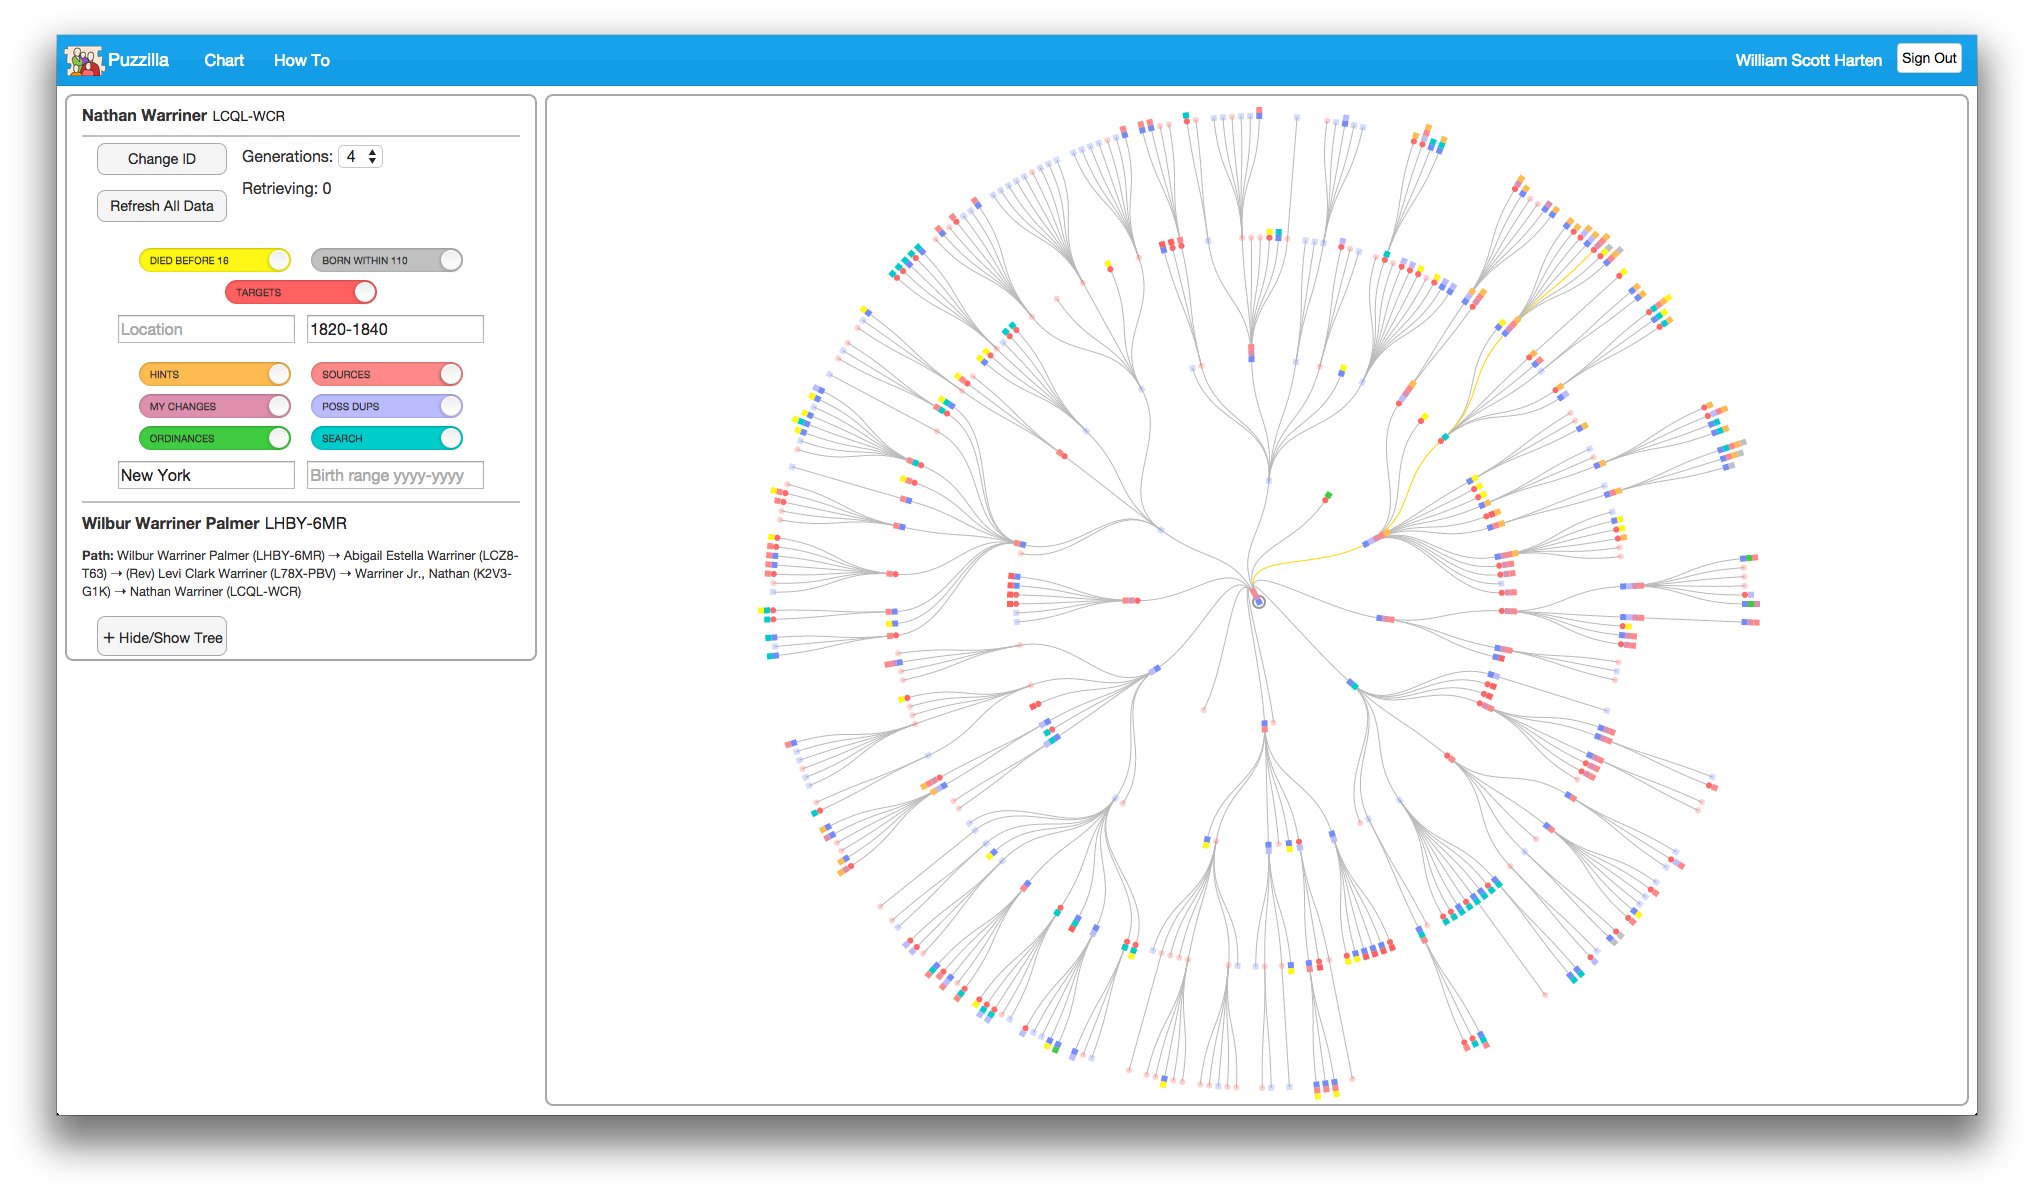 The Puzzilla Descendants Viewer Is A Services That Helps Researchers